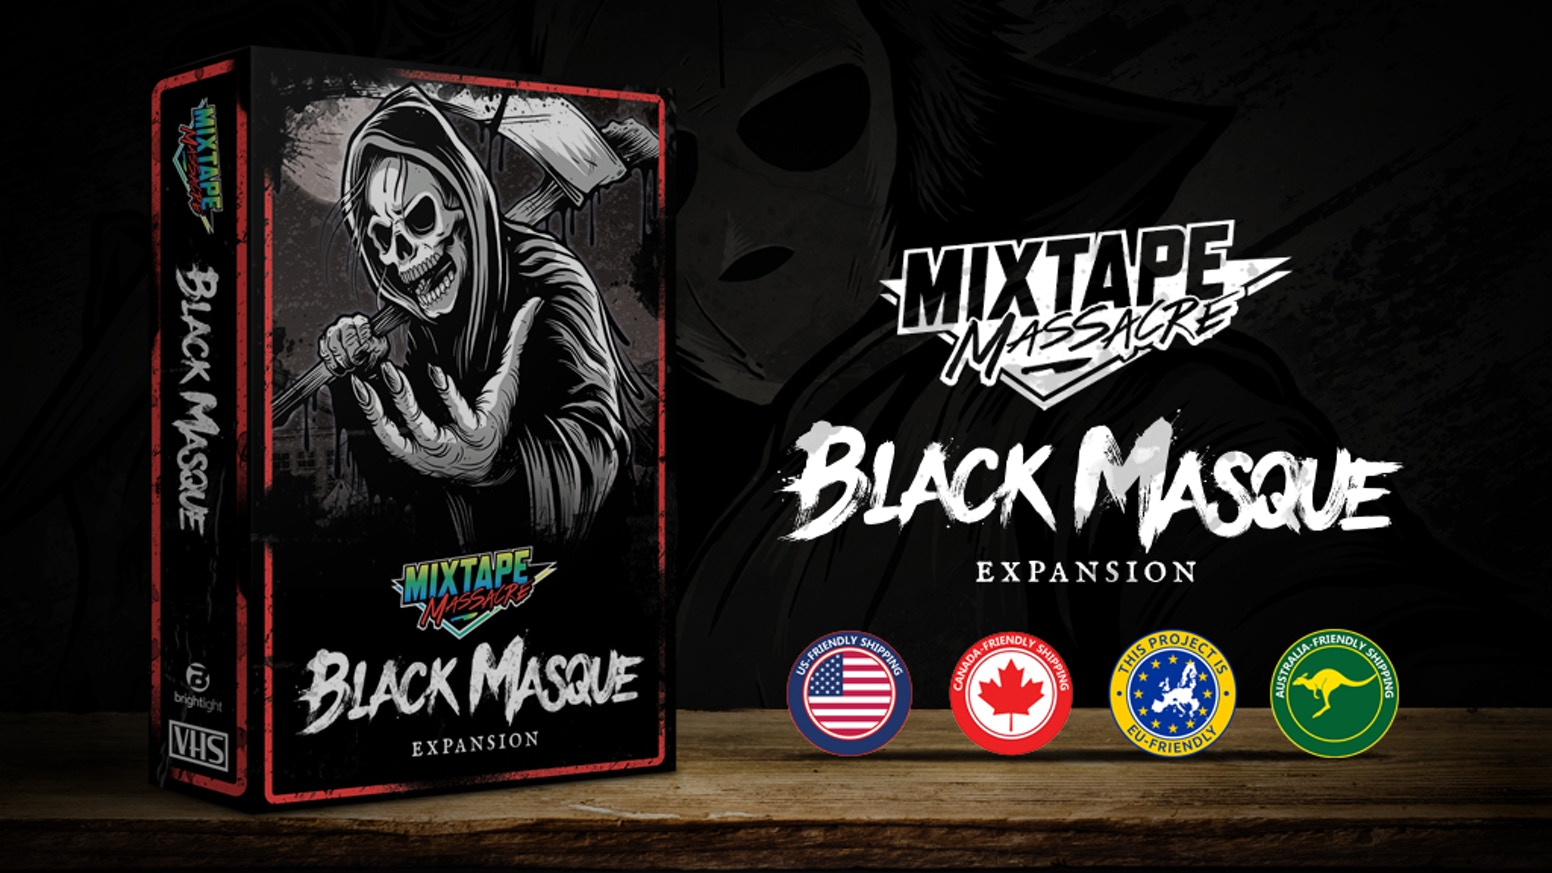 The fan-demanded expansion for Mixtape Massacre, adding new cards, characters, components, and gameplay to grow the game and experience.